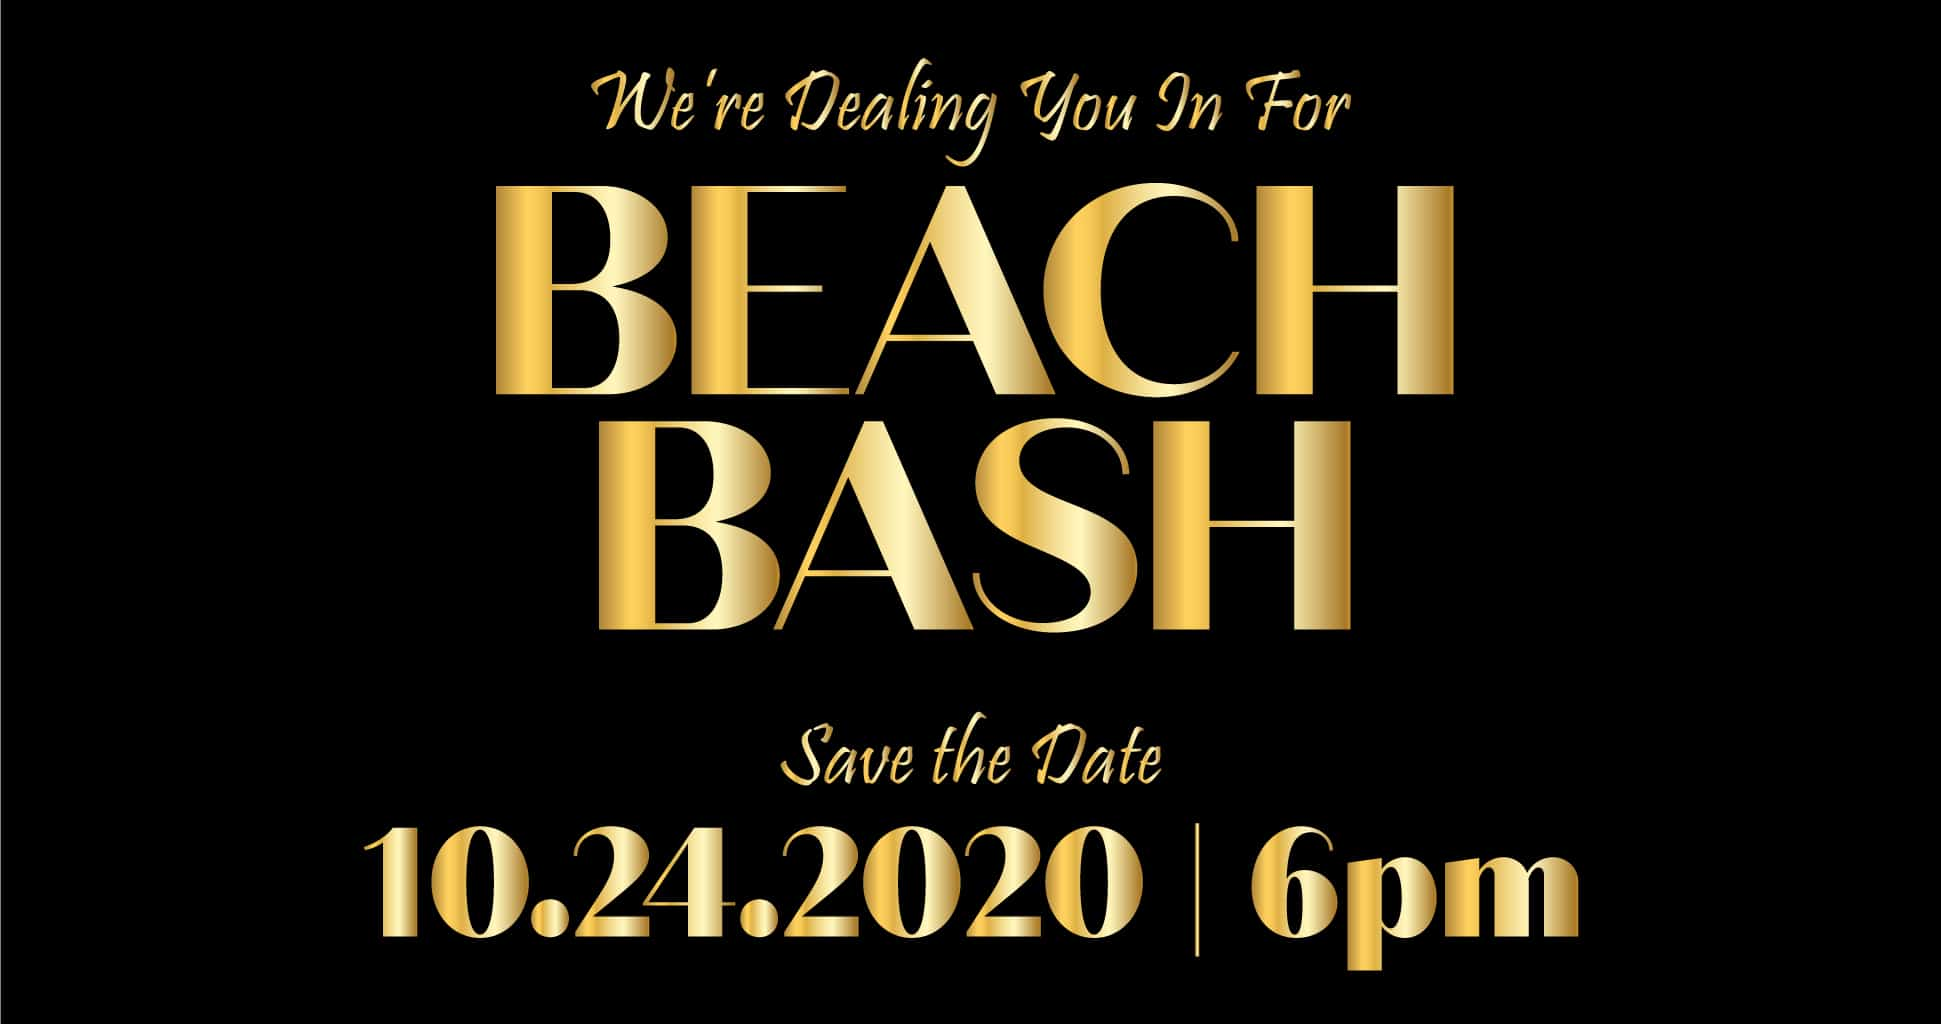 We're Dealing you in for Beach Bash. Save the Date: 10/24/2020 | 6pm